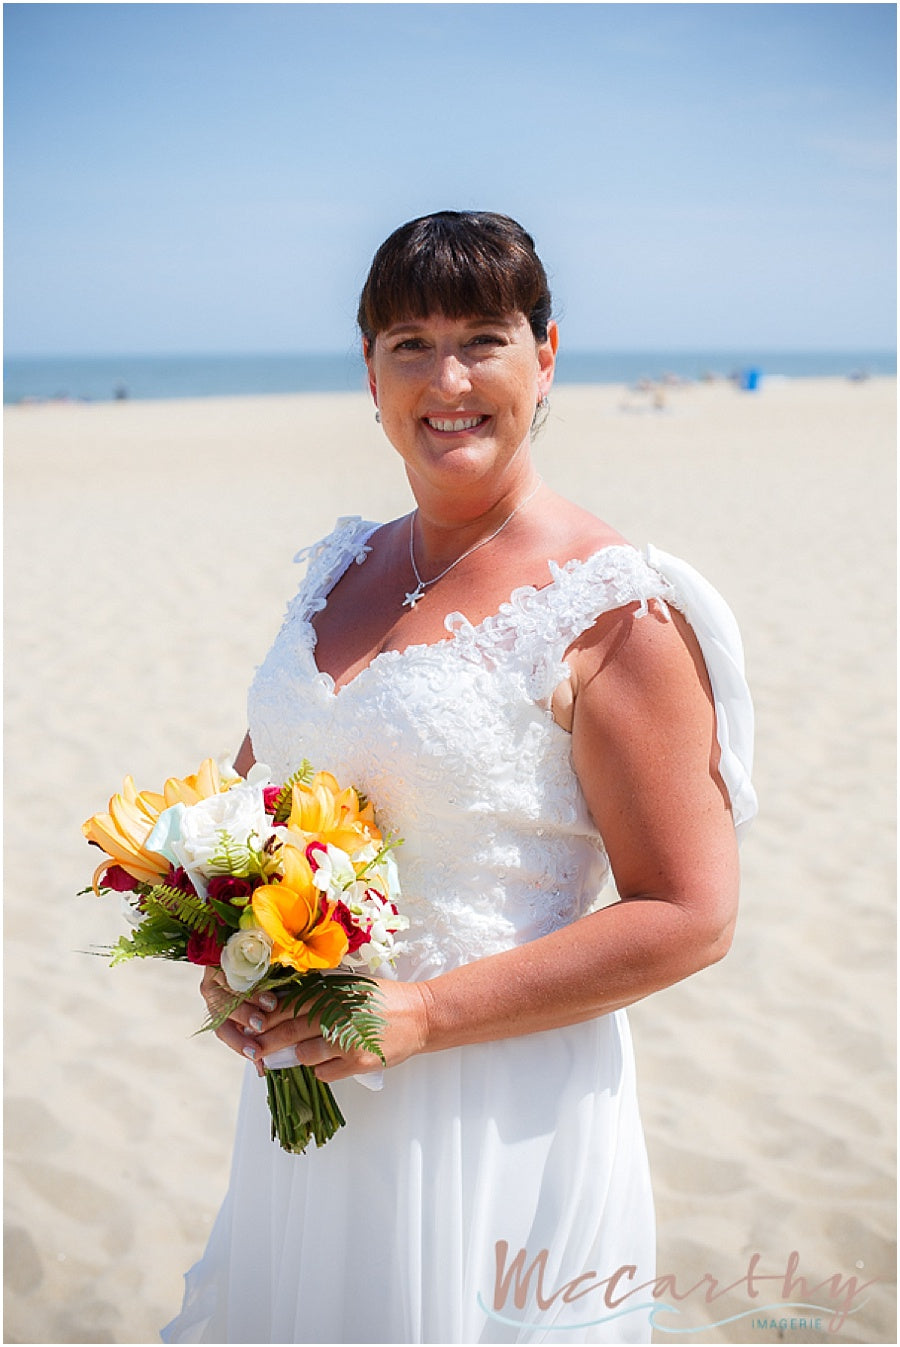 little miss lovely floral design // McCarthy Imagerie // Ocean City Maryland Tropical Beach Wedding Bouquets